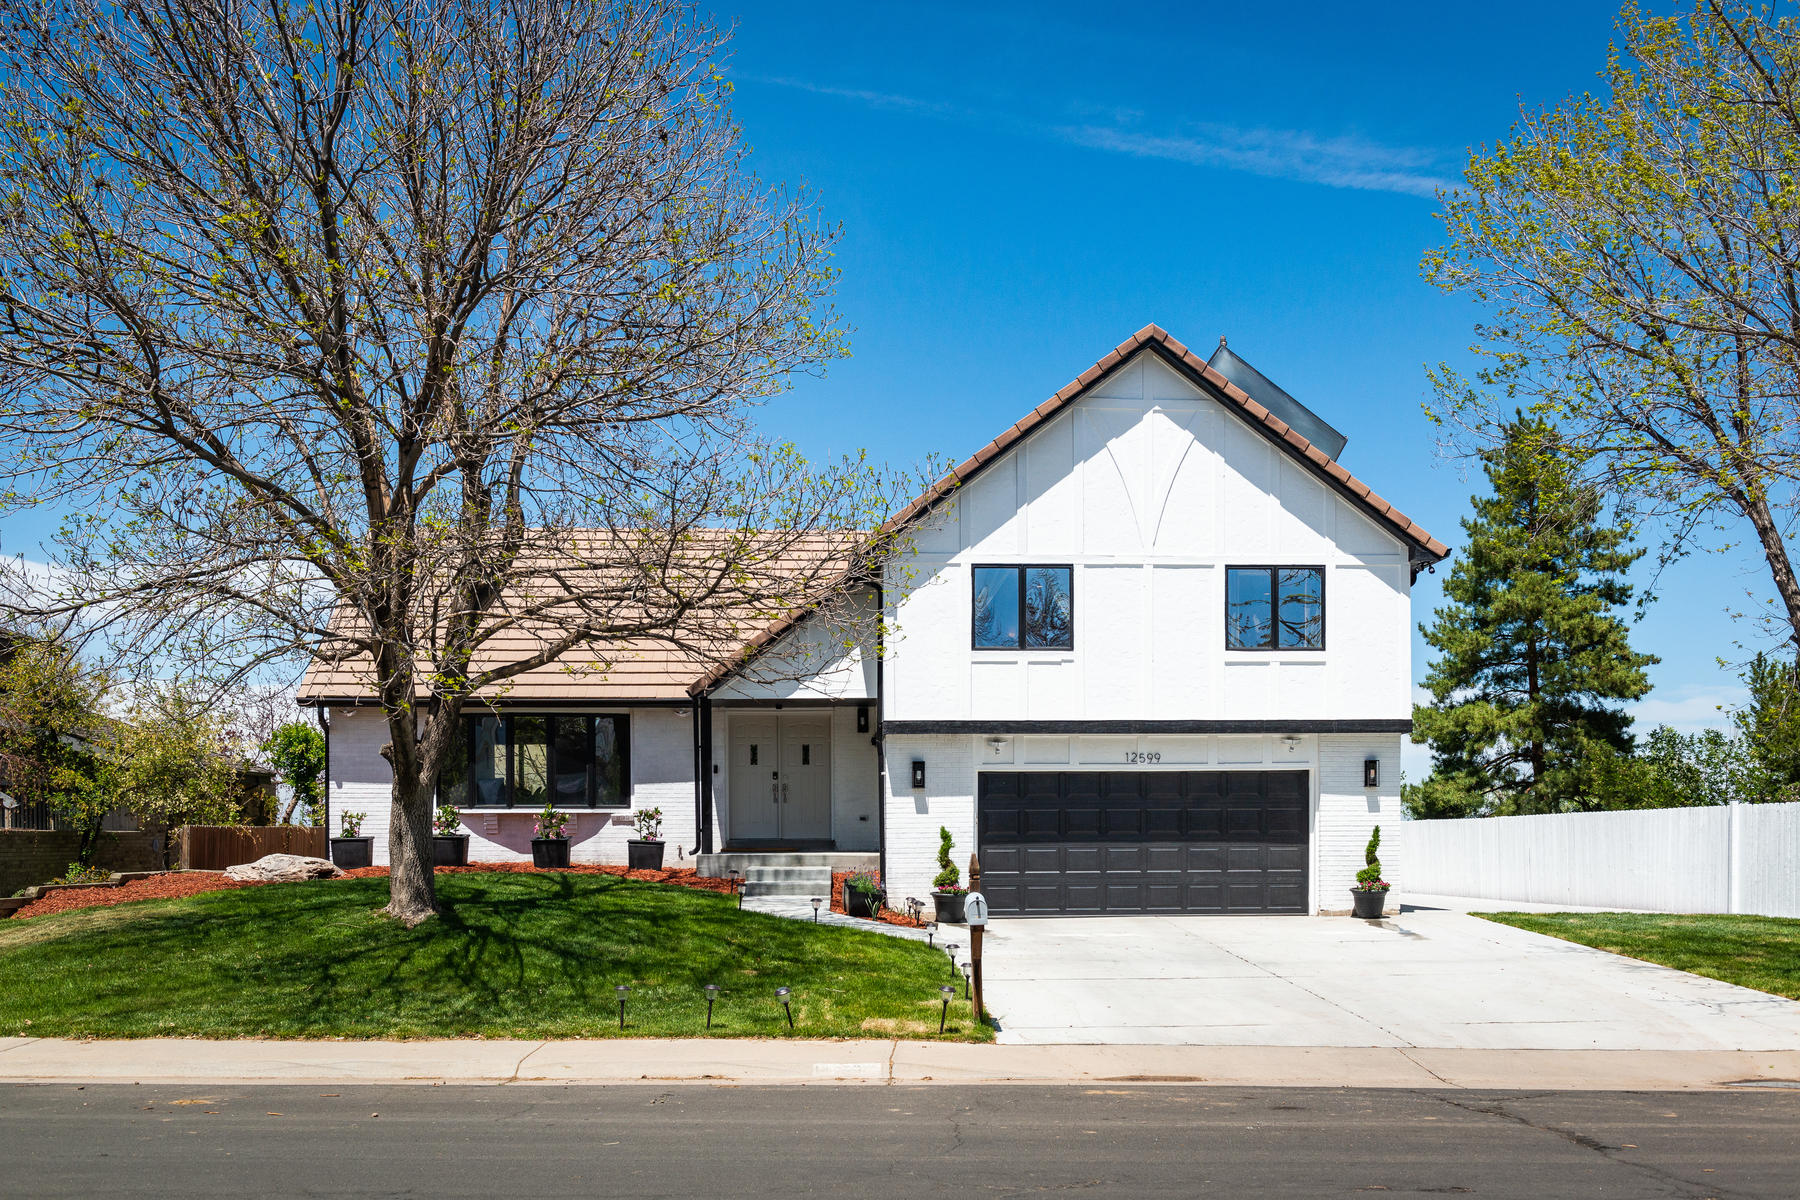 Single Family Homes for Sale at Highest Quality Renovation on the Market Today! 12599 E Cedar Avenue, Aurora, Colorado 80012 United States